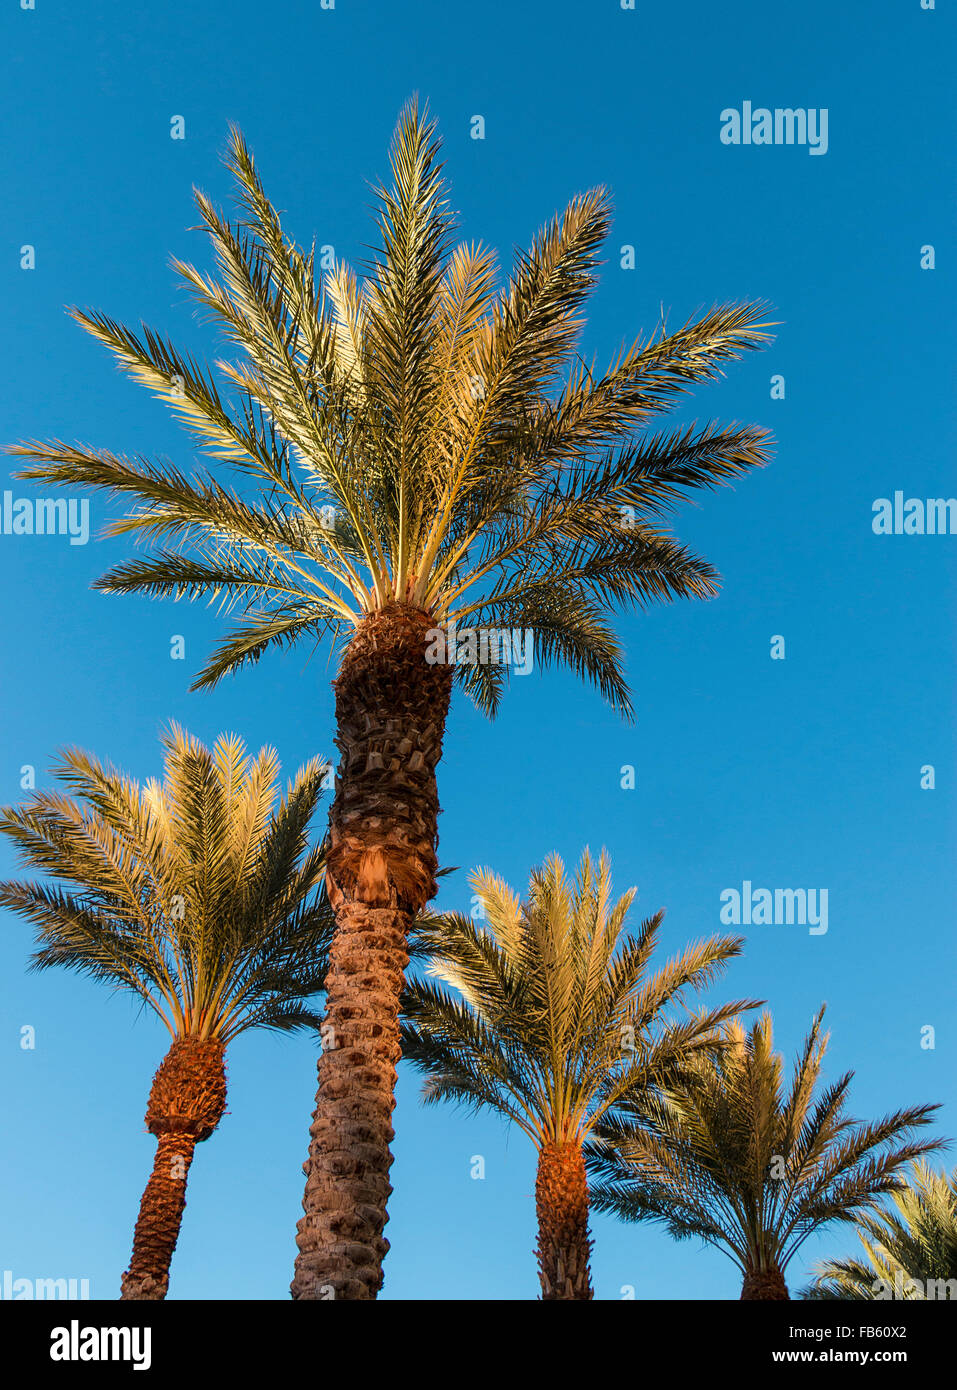 trimmed date palm trees (Phoenix dactylifera) in Nevada. - Stock Image